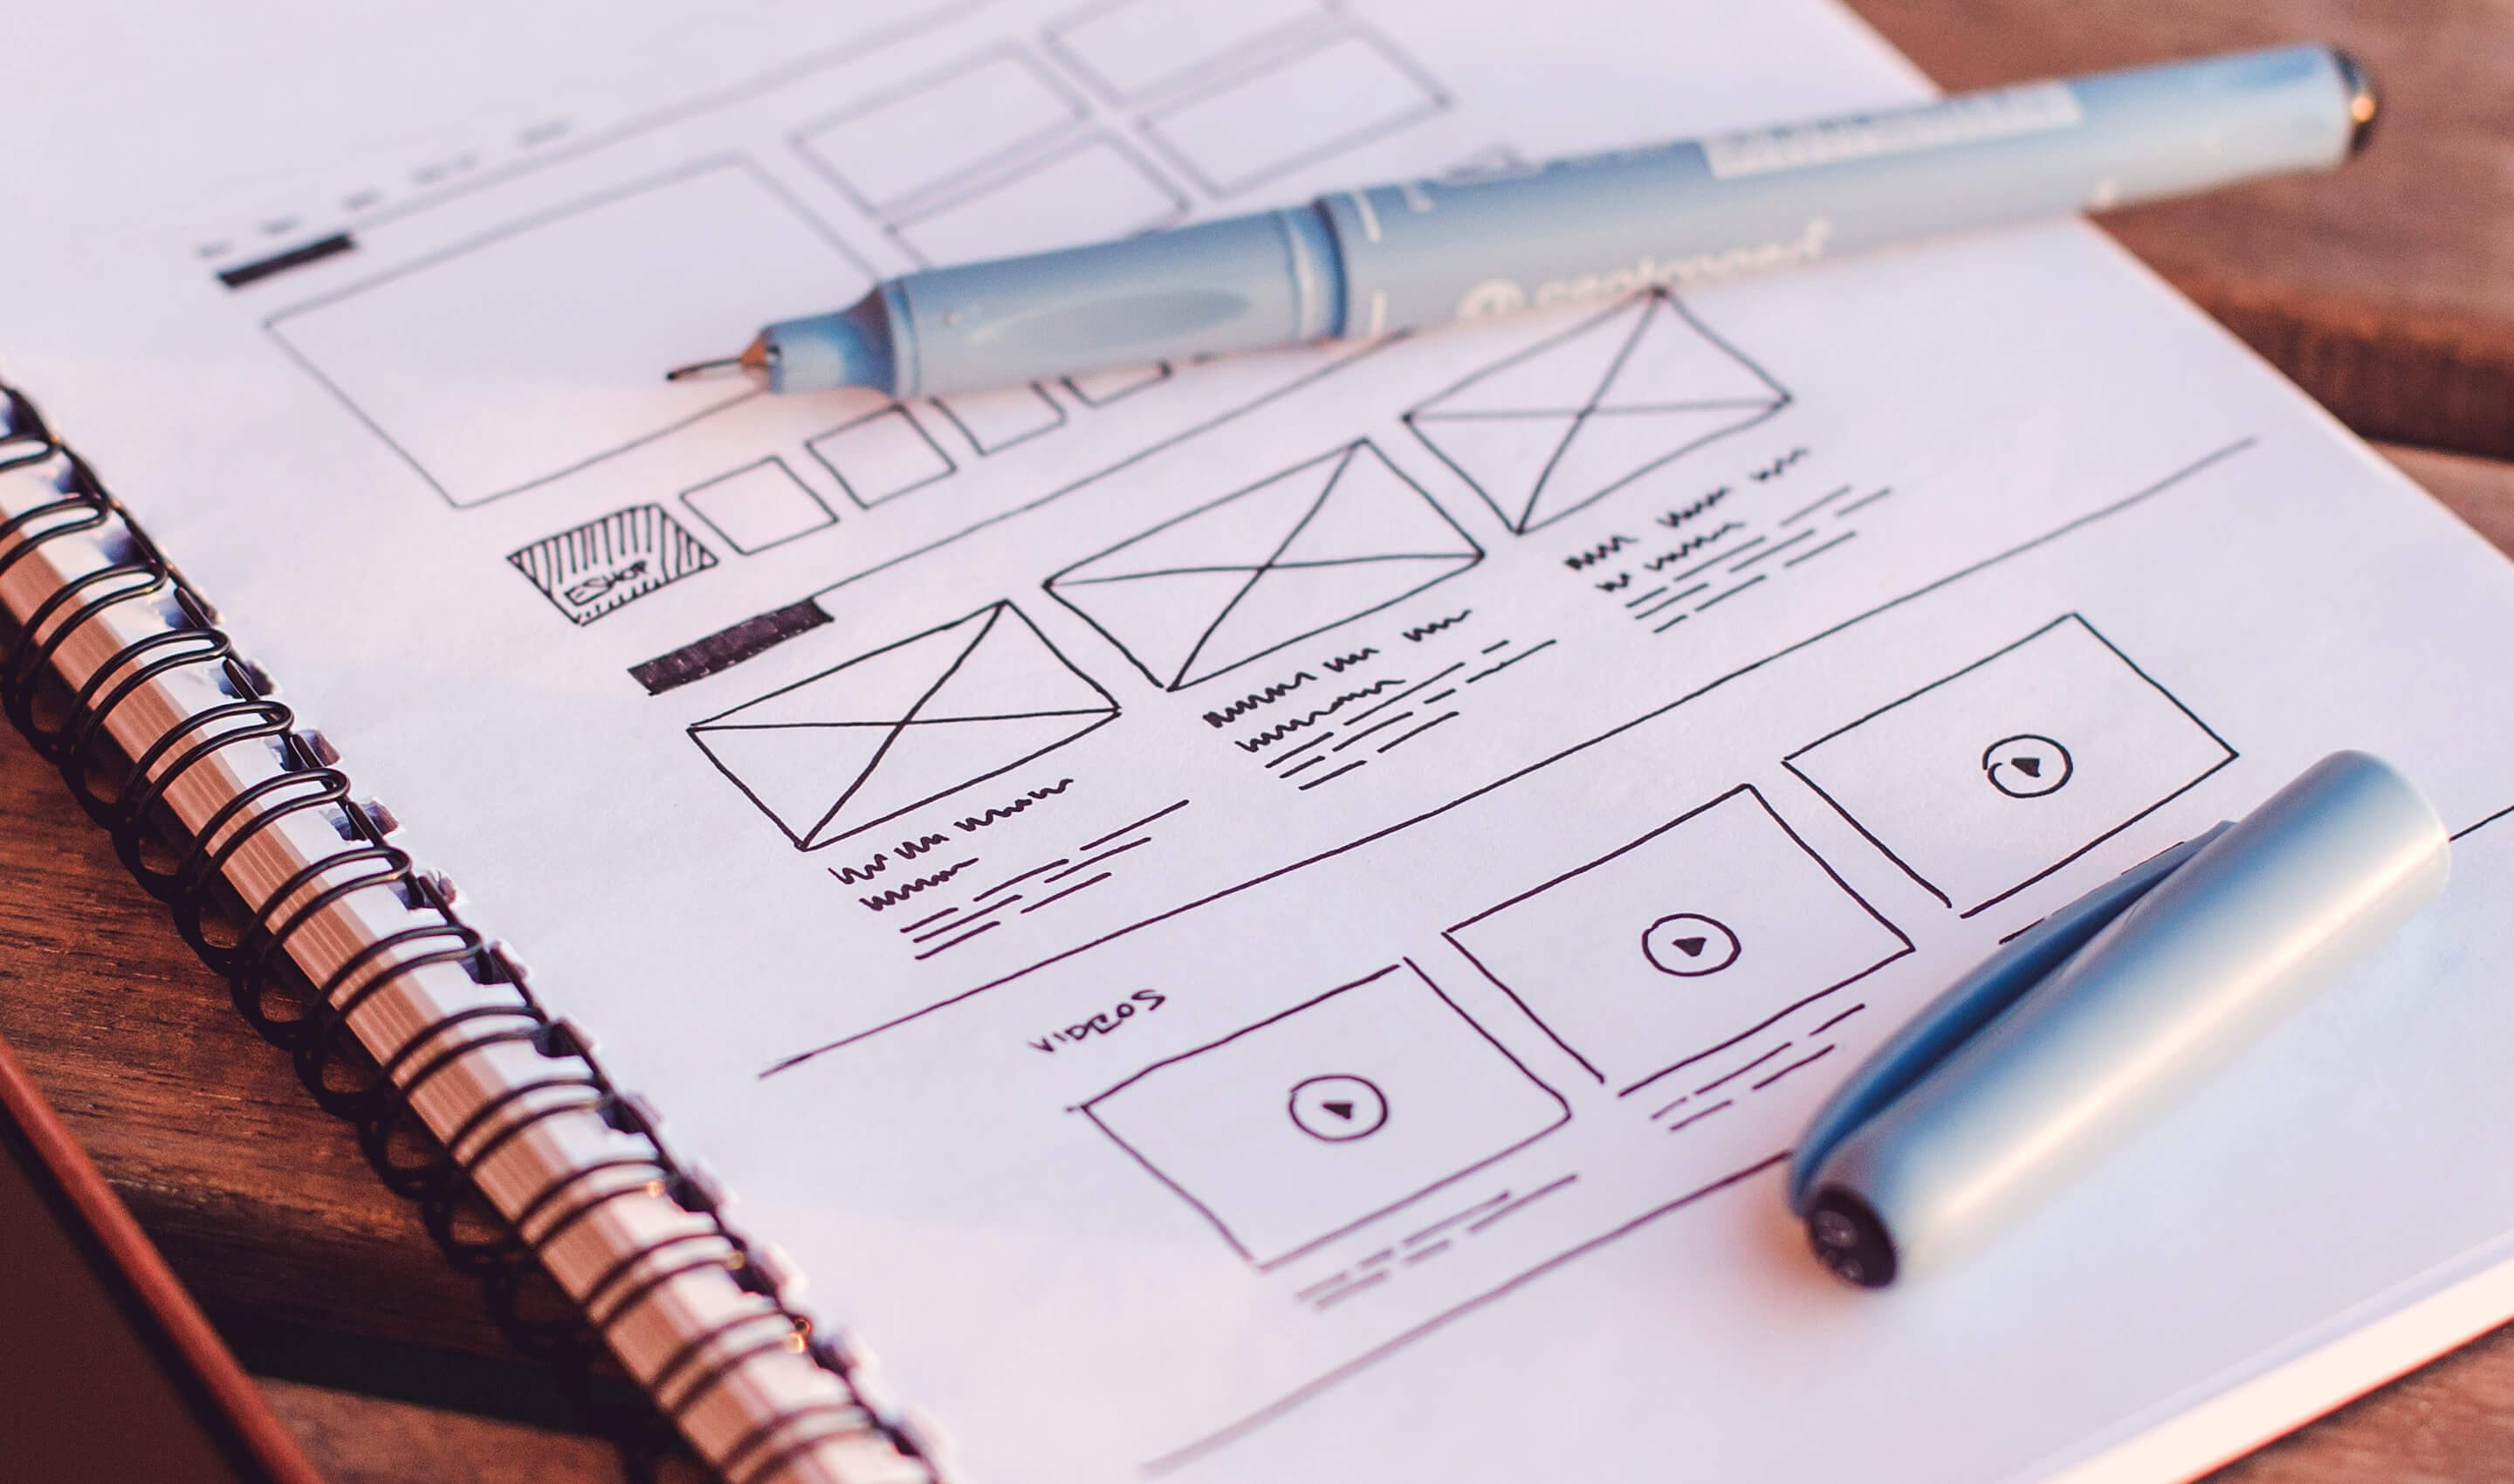 Wireframing your next web design project is important   45royale The importance of wireframing